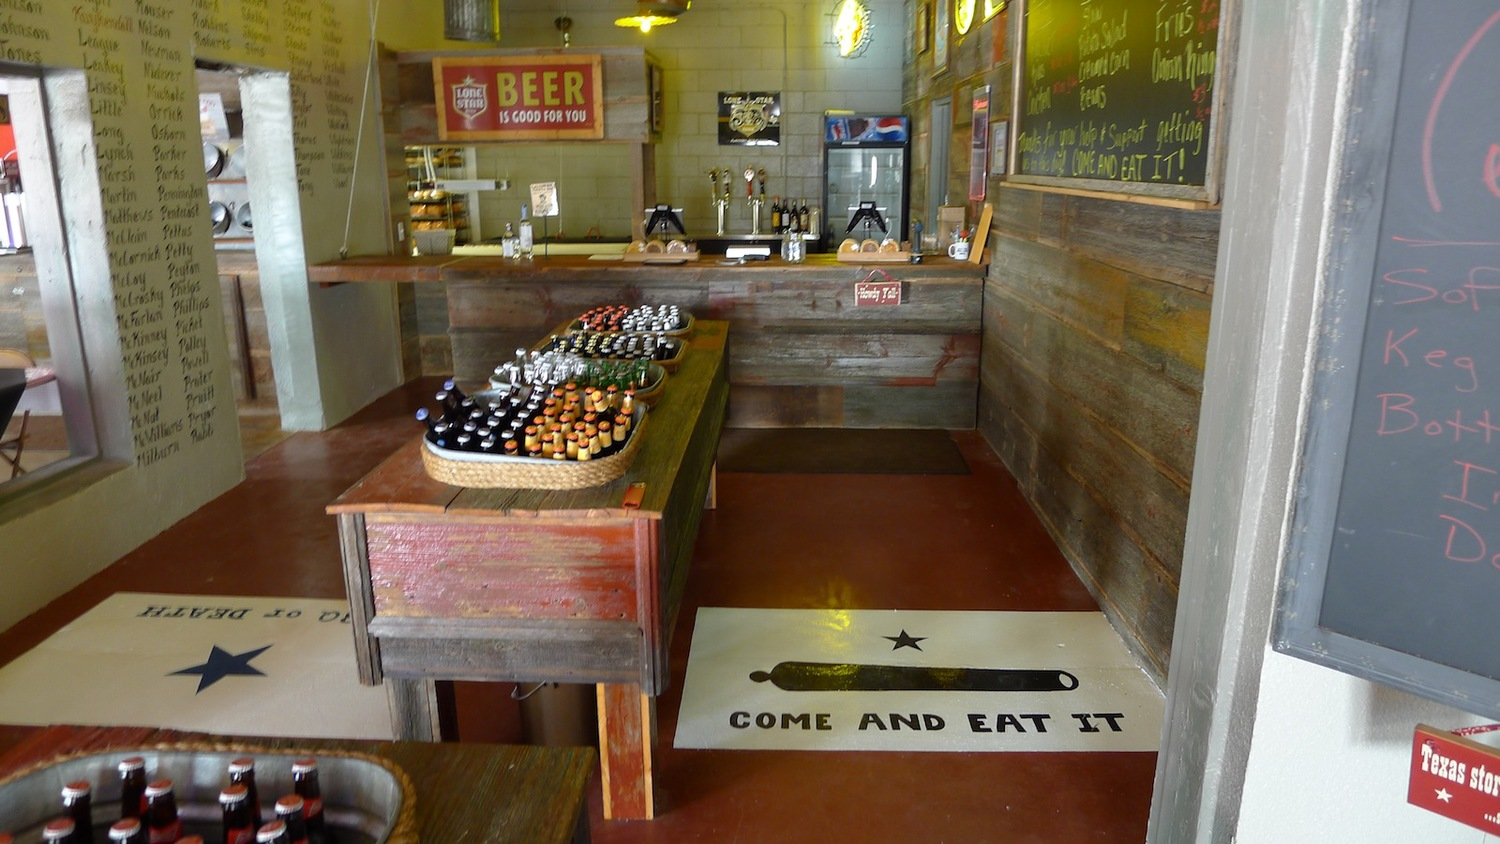 Get ready to order - the walk-up order area at Old 300 BBQ